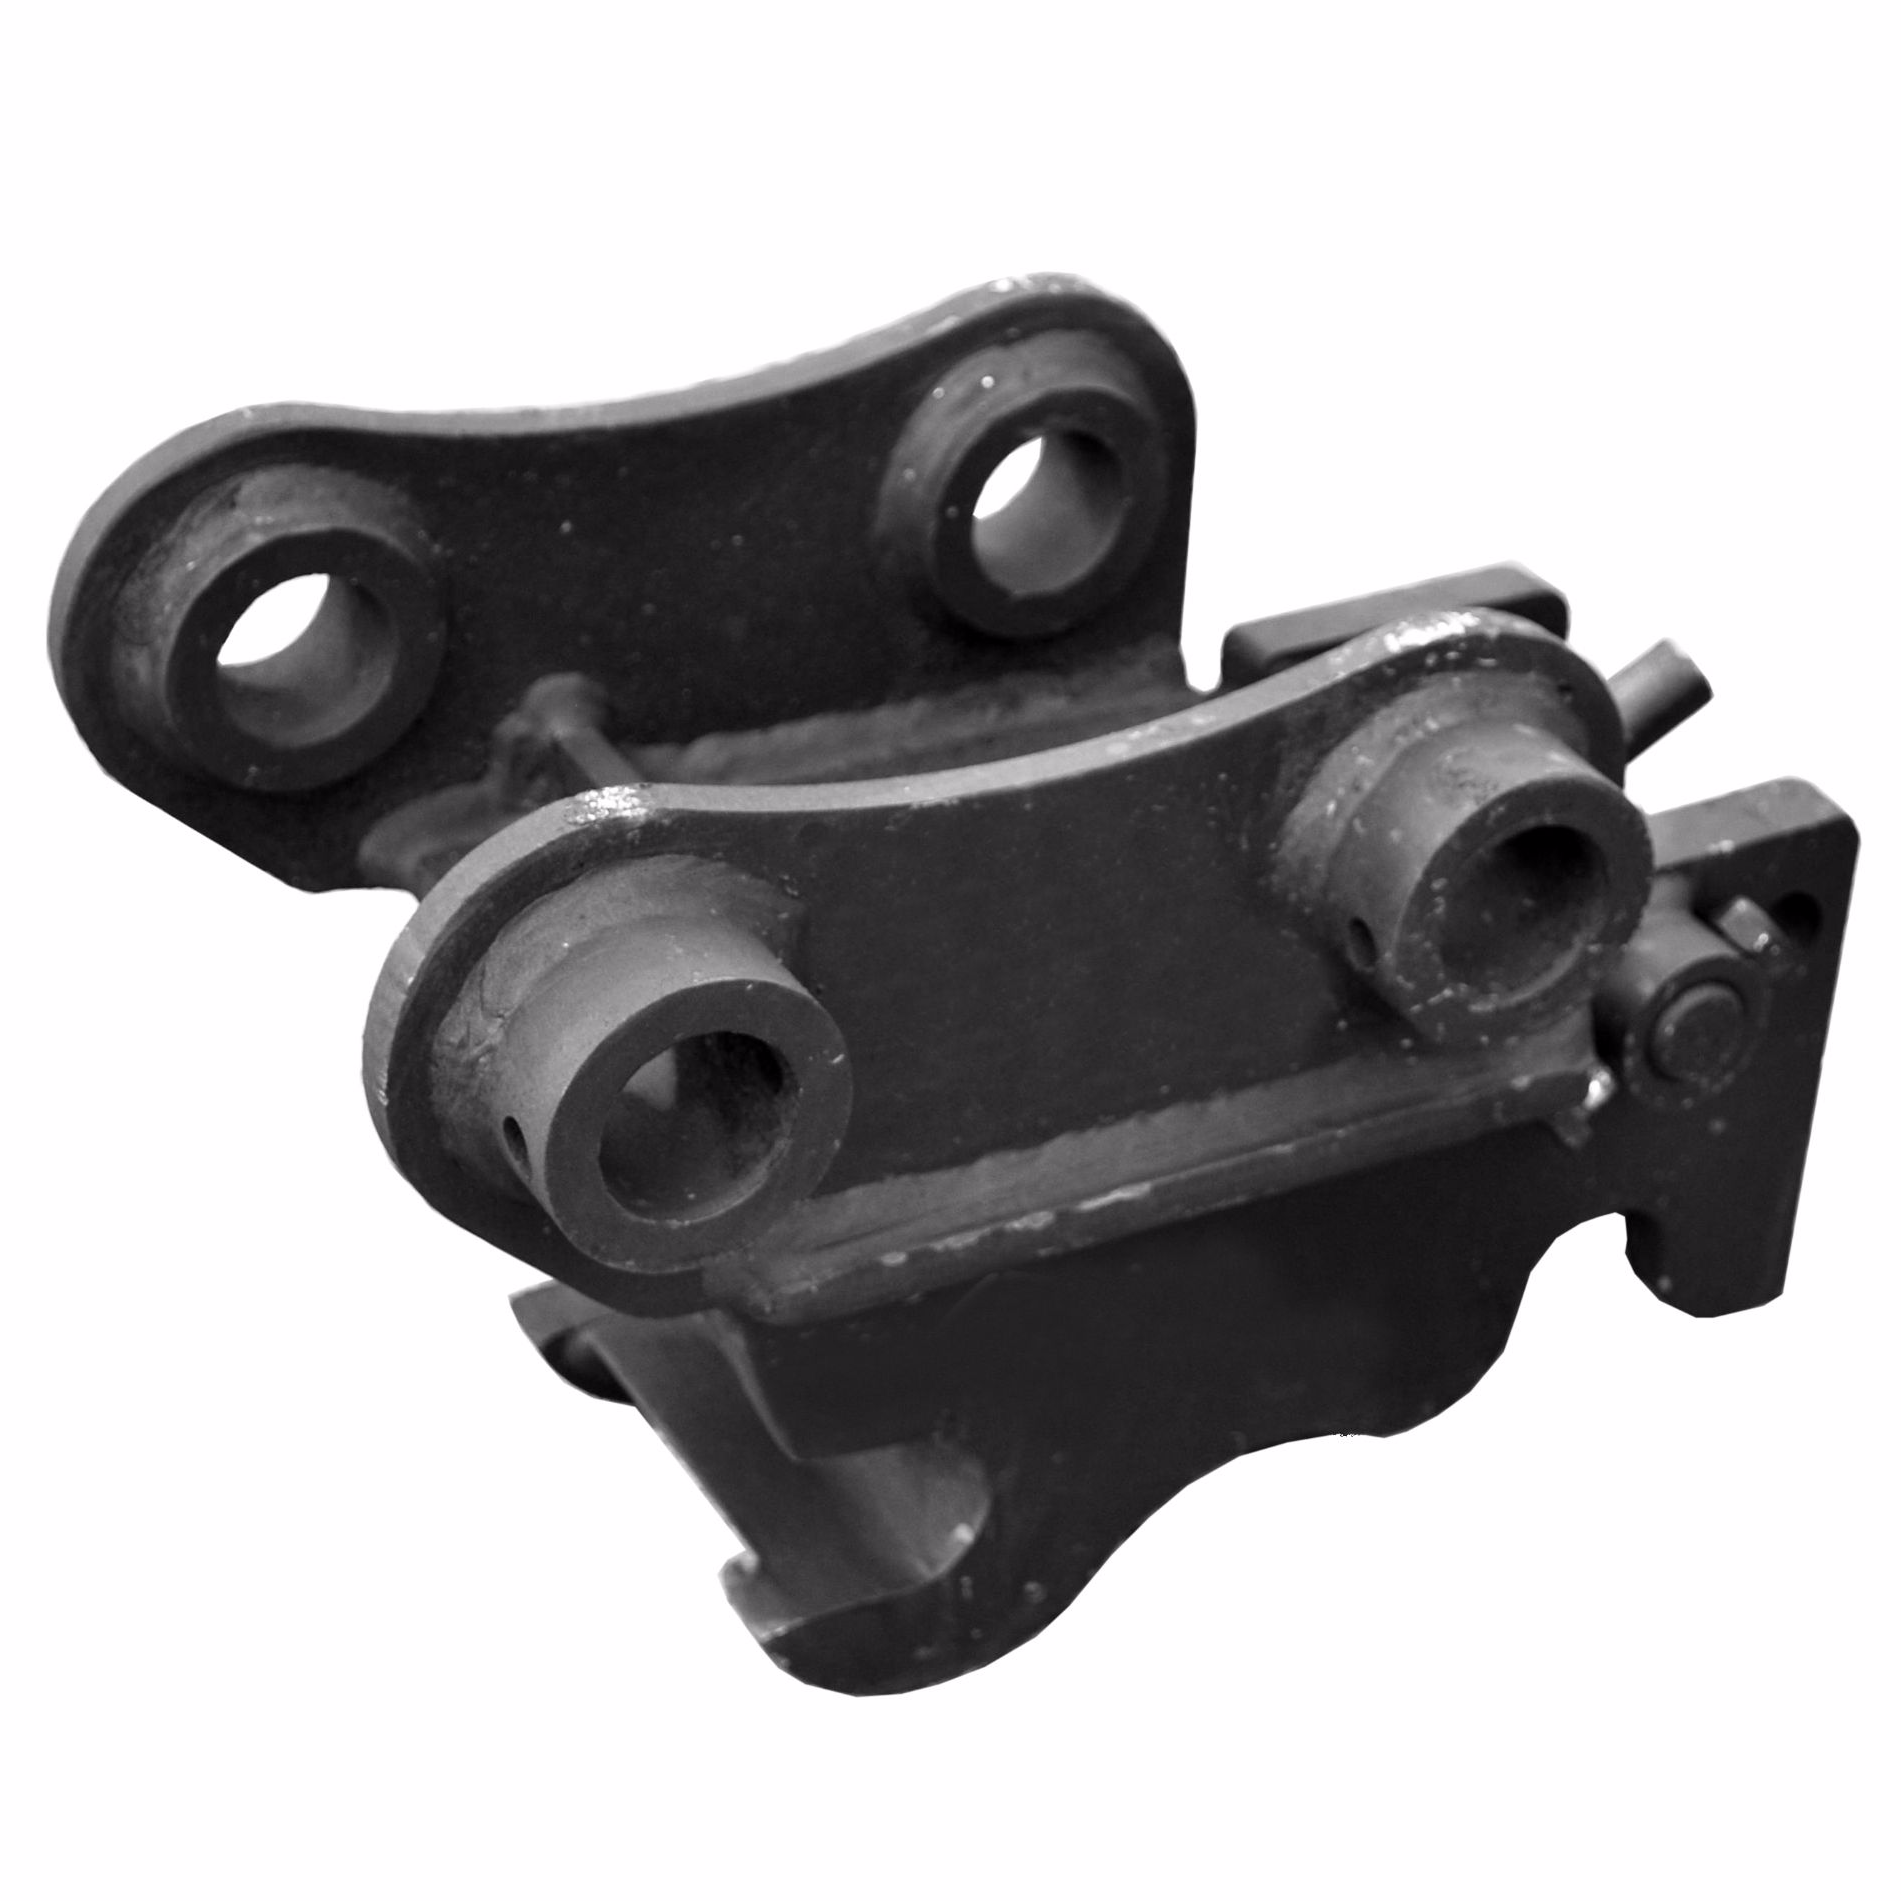 Quick Hitch Top Link : Springlock quick hitch